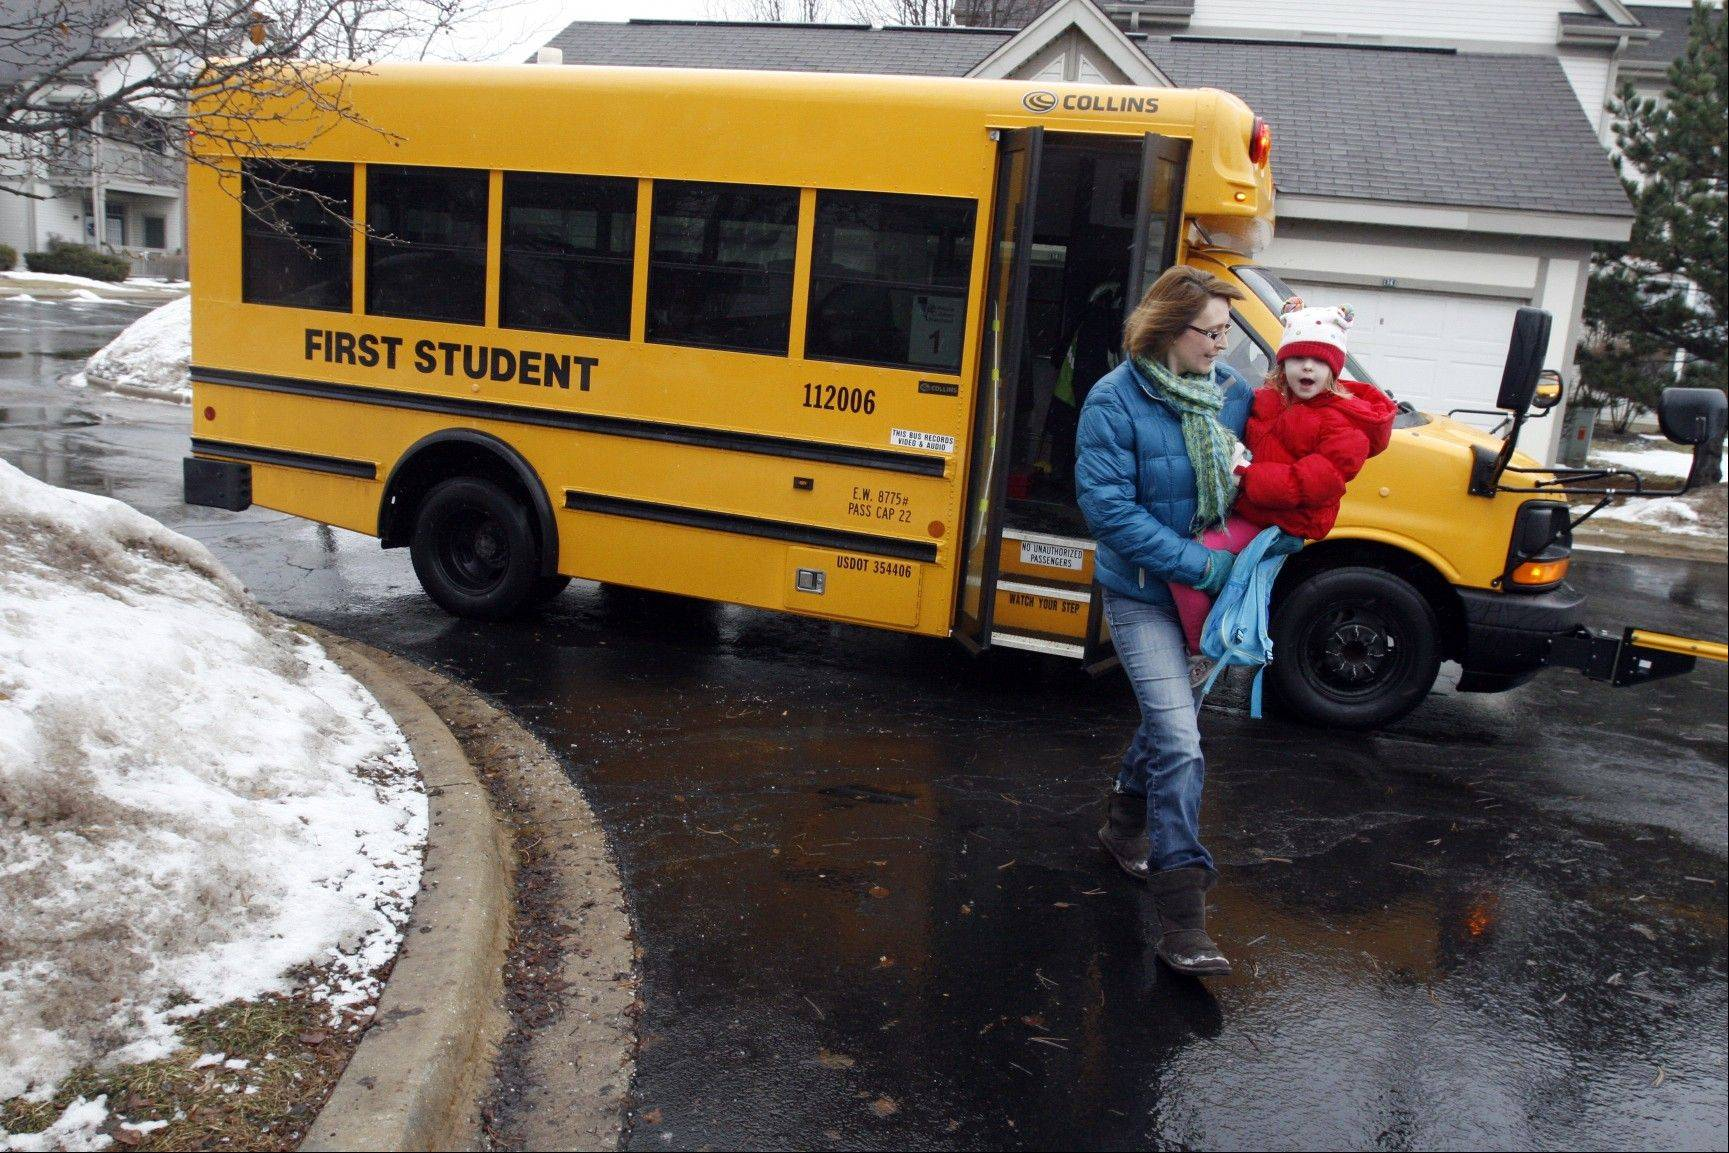 Associated Press Debbie Jurcak, a mother of three, carries her 4-year-old daughter Ella off the school bus after preschool outside their apartment in Aurora. Jurcak, 43, was among many Americans who lost unemployment benefits in late December. On the verge of eviction, she and her husband sought the help of faith-based organizations to help them pay rent.